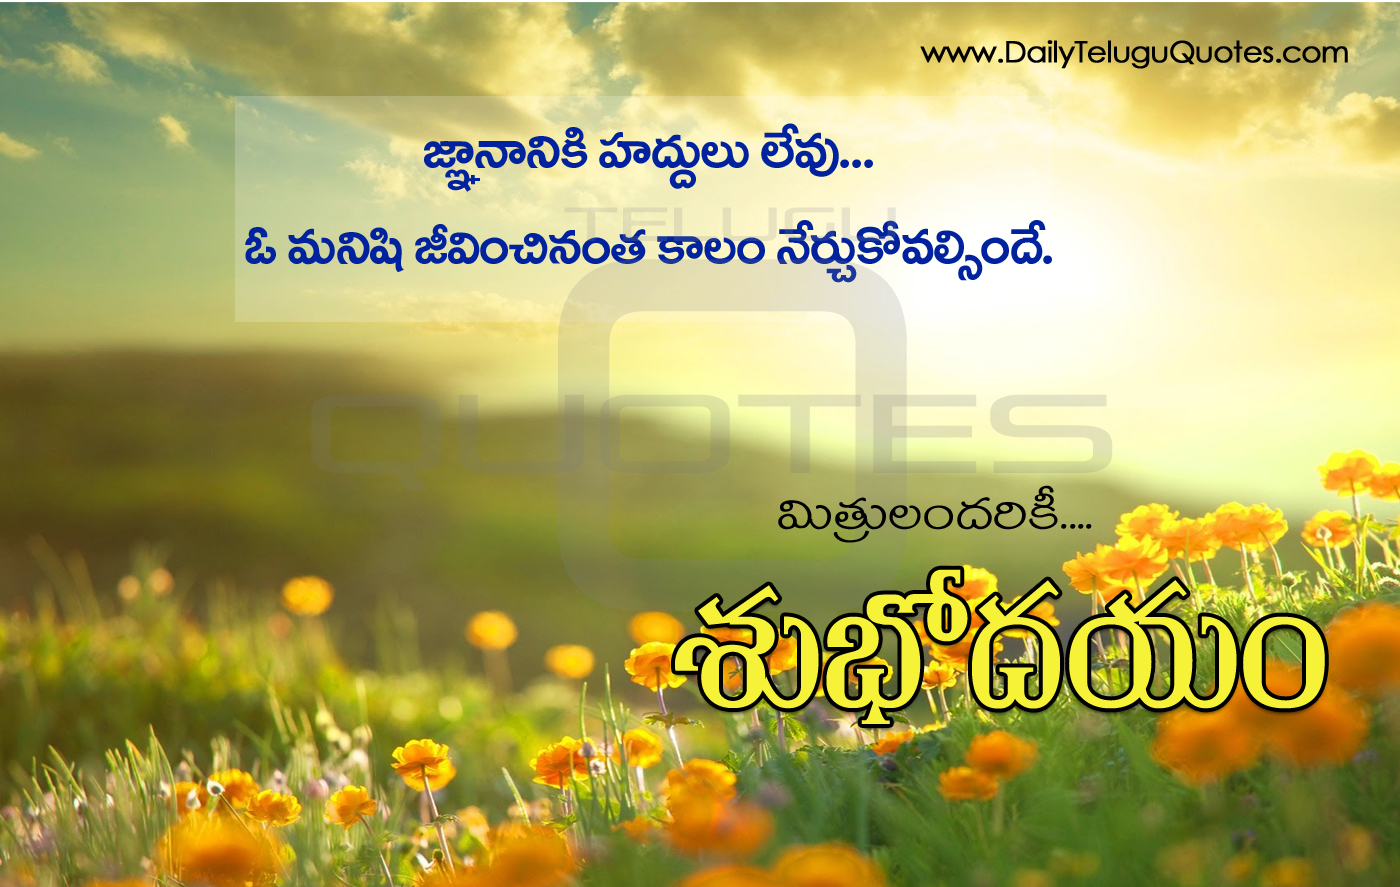 Good Morning Quotes Goodreads : Best morning greetings and quotes in telugu with nice